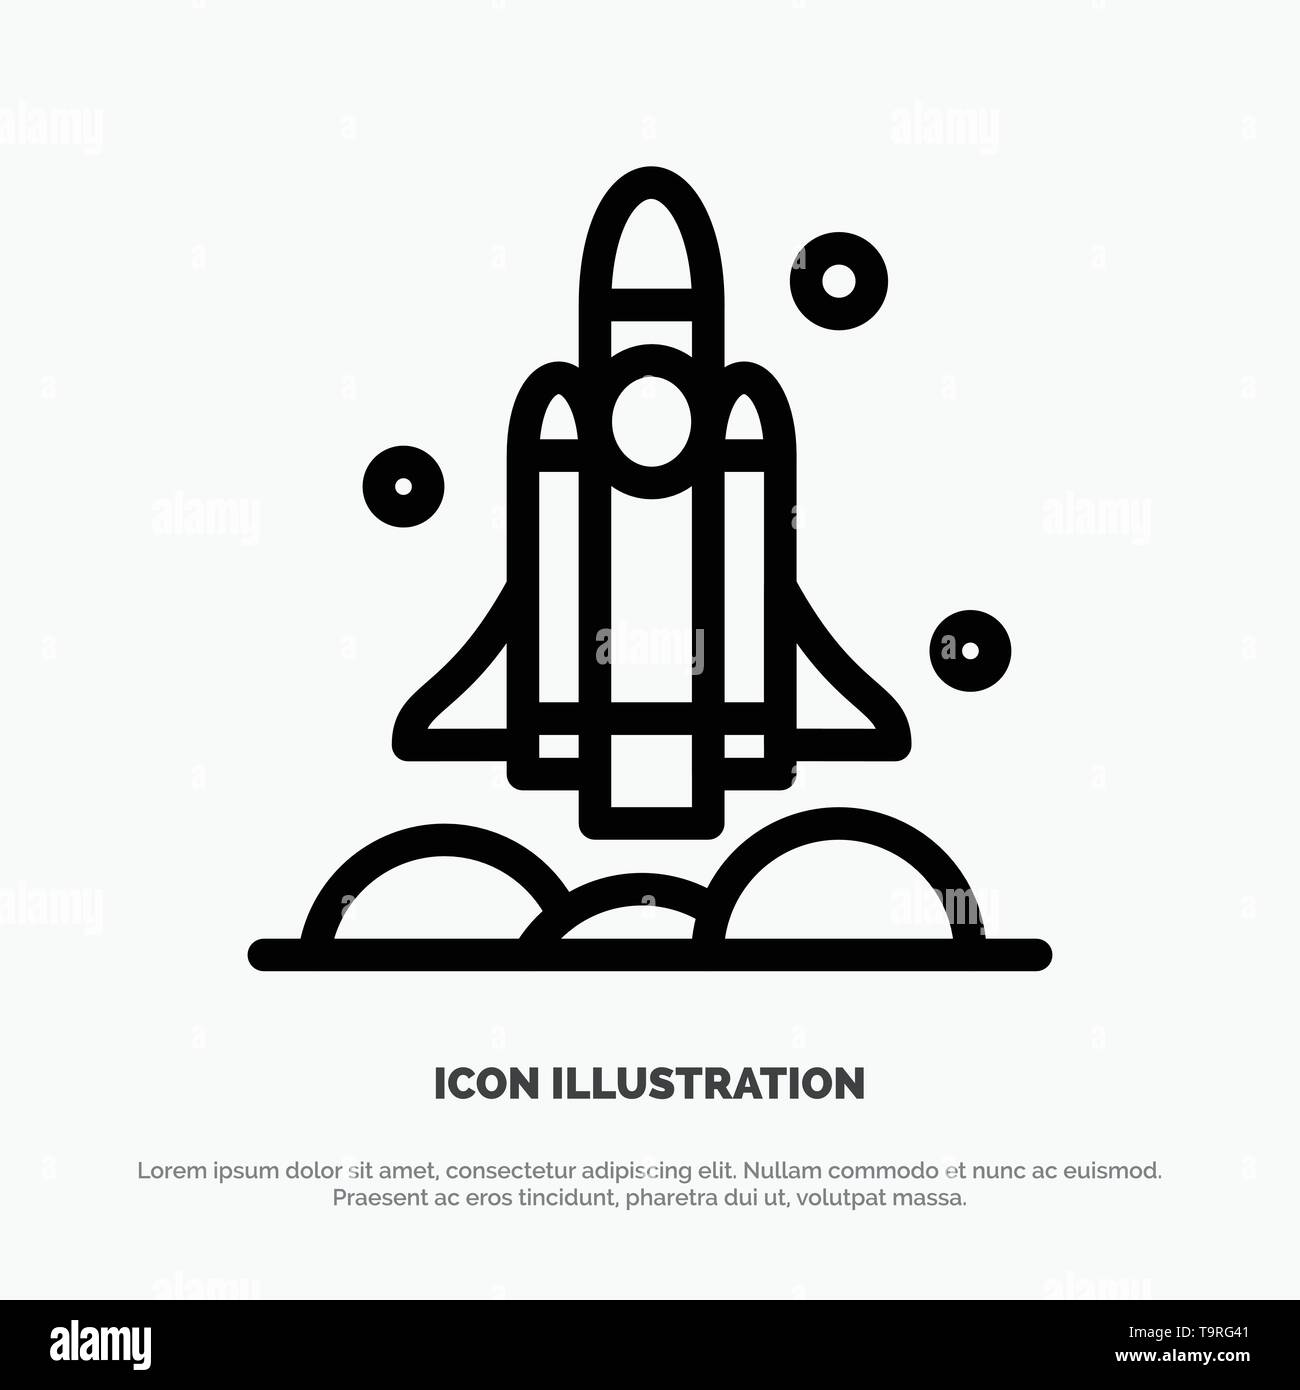 Launcher, Rocket, Spaceship, Transport, Usa Line Icon Vector - Stock Image